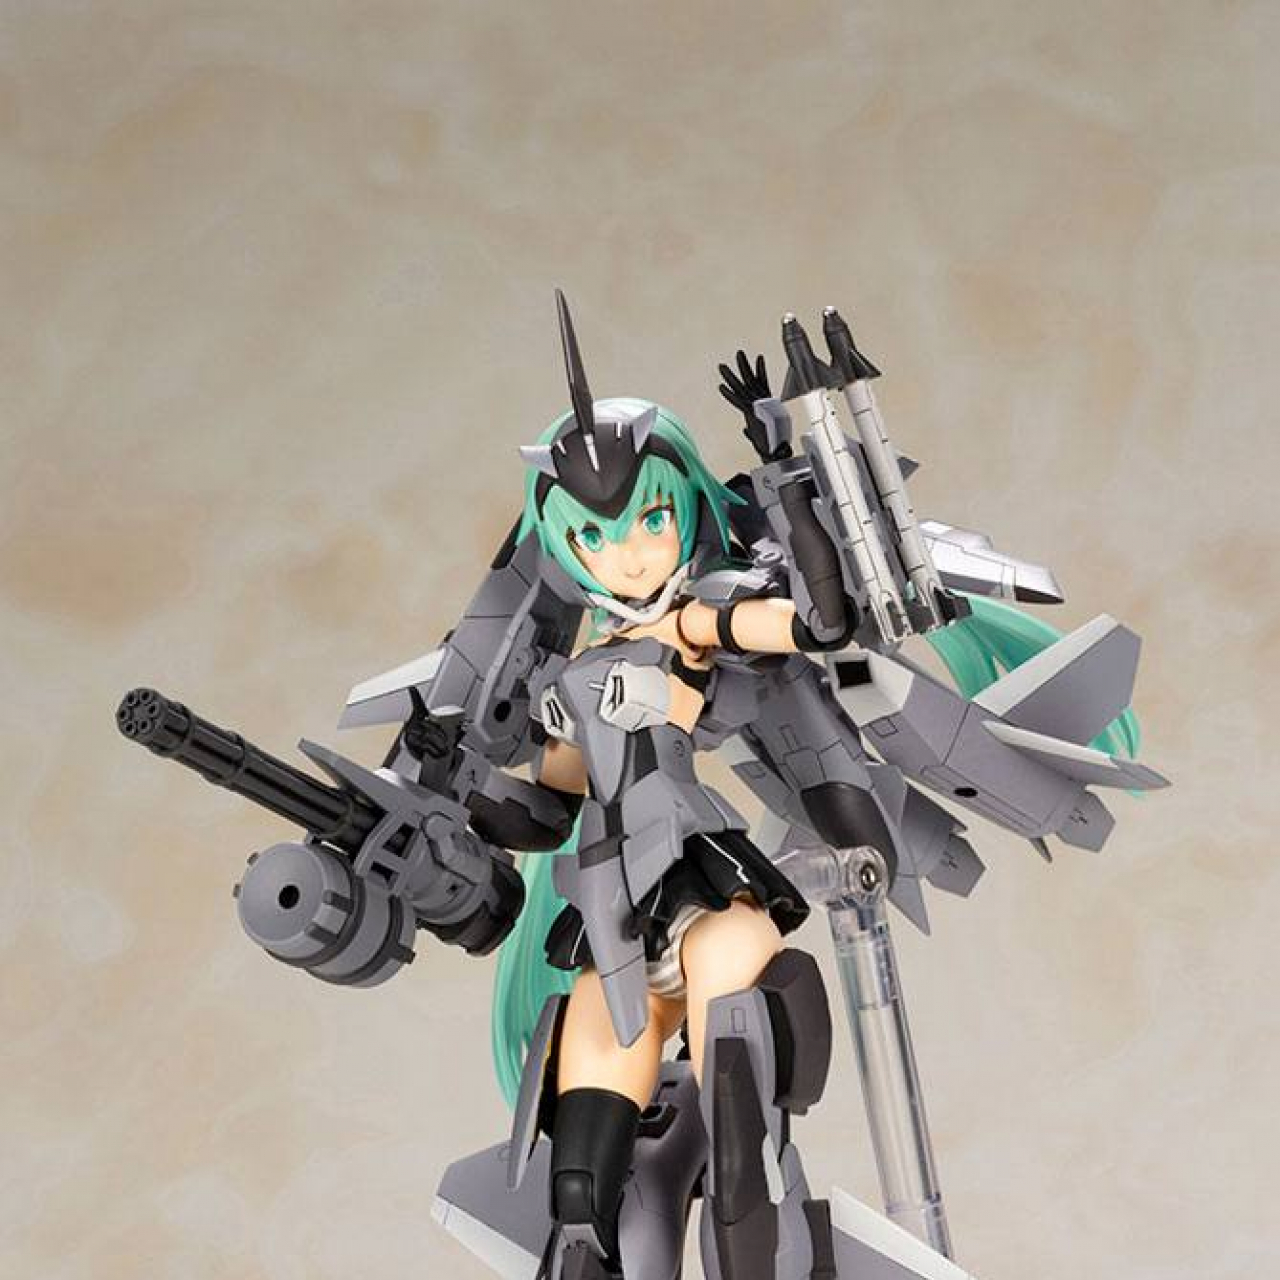 Frame Arms Girl Plastic Model Kit Stylet XF-3 Low Visibility Ver. 18 cm